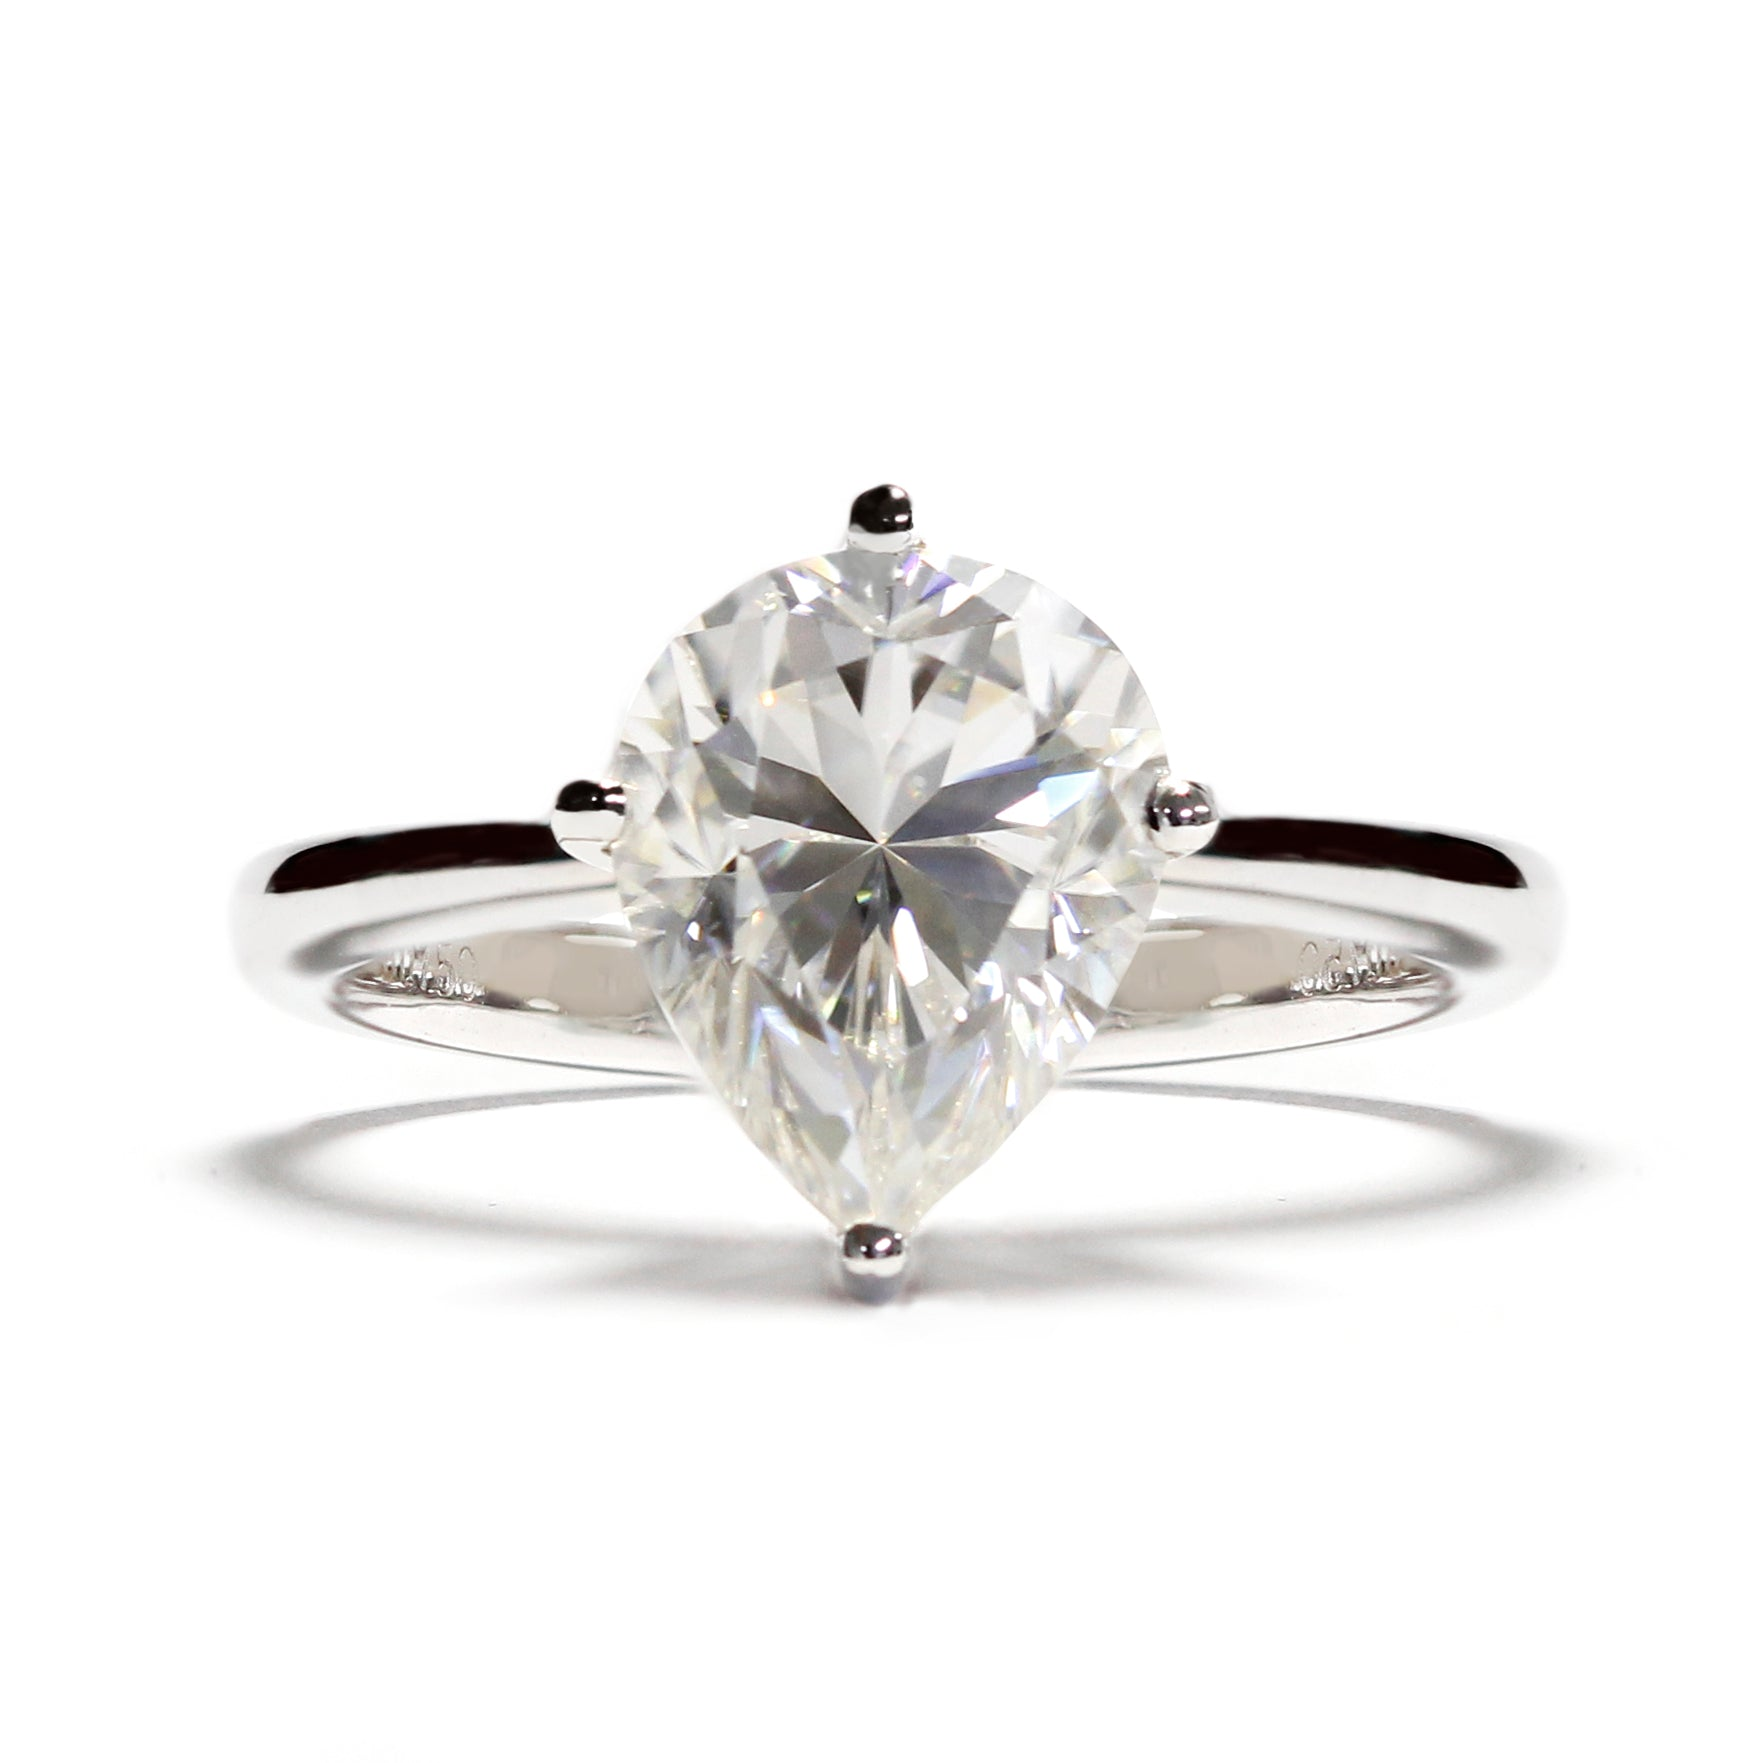 Pear Moissanite Solitaire on 18K White Gold Ring - Lecaine Gems Moissanite